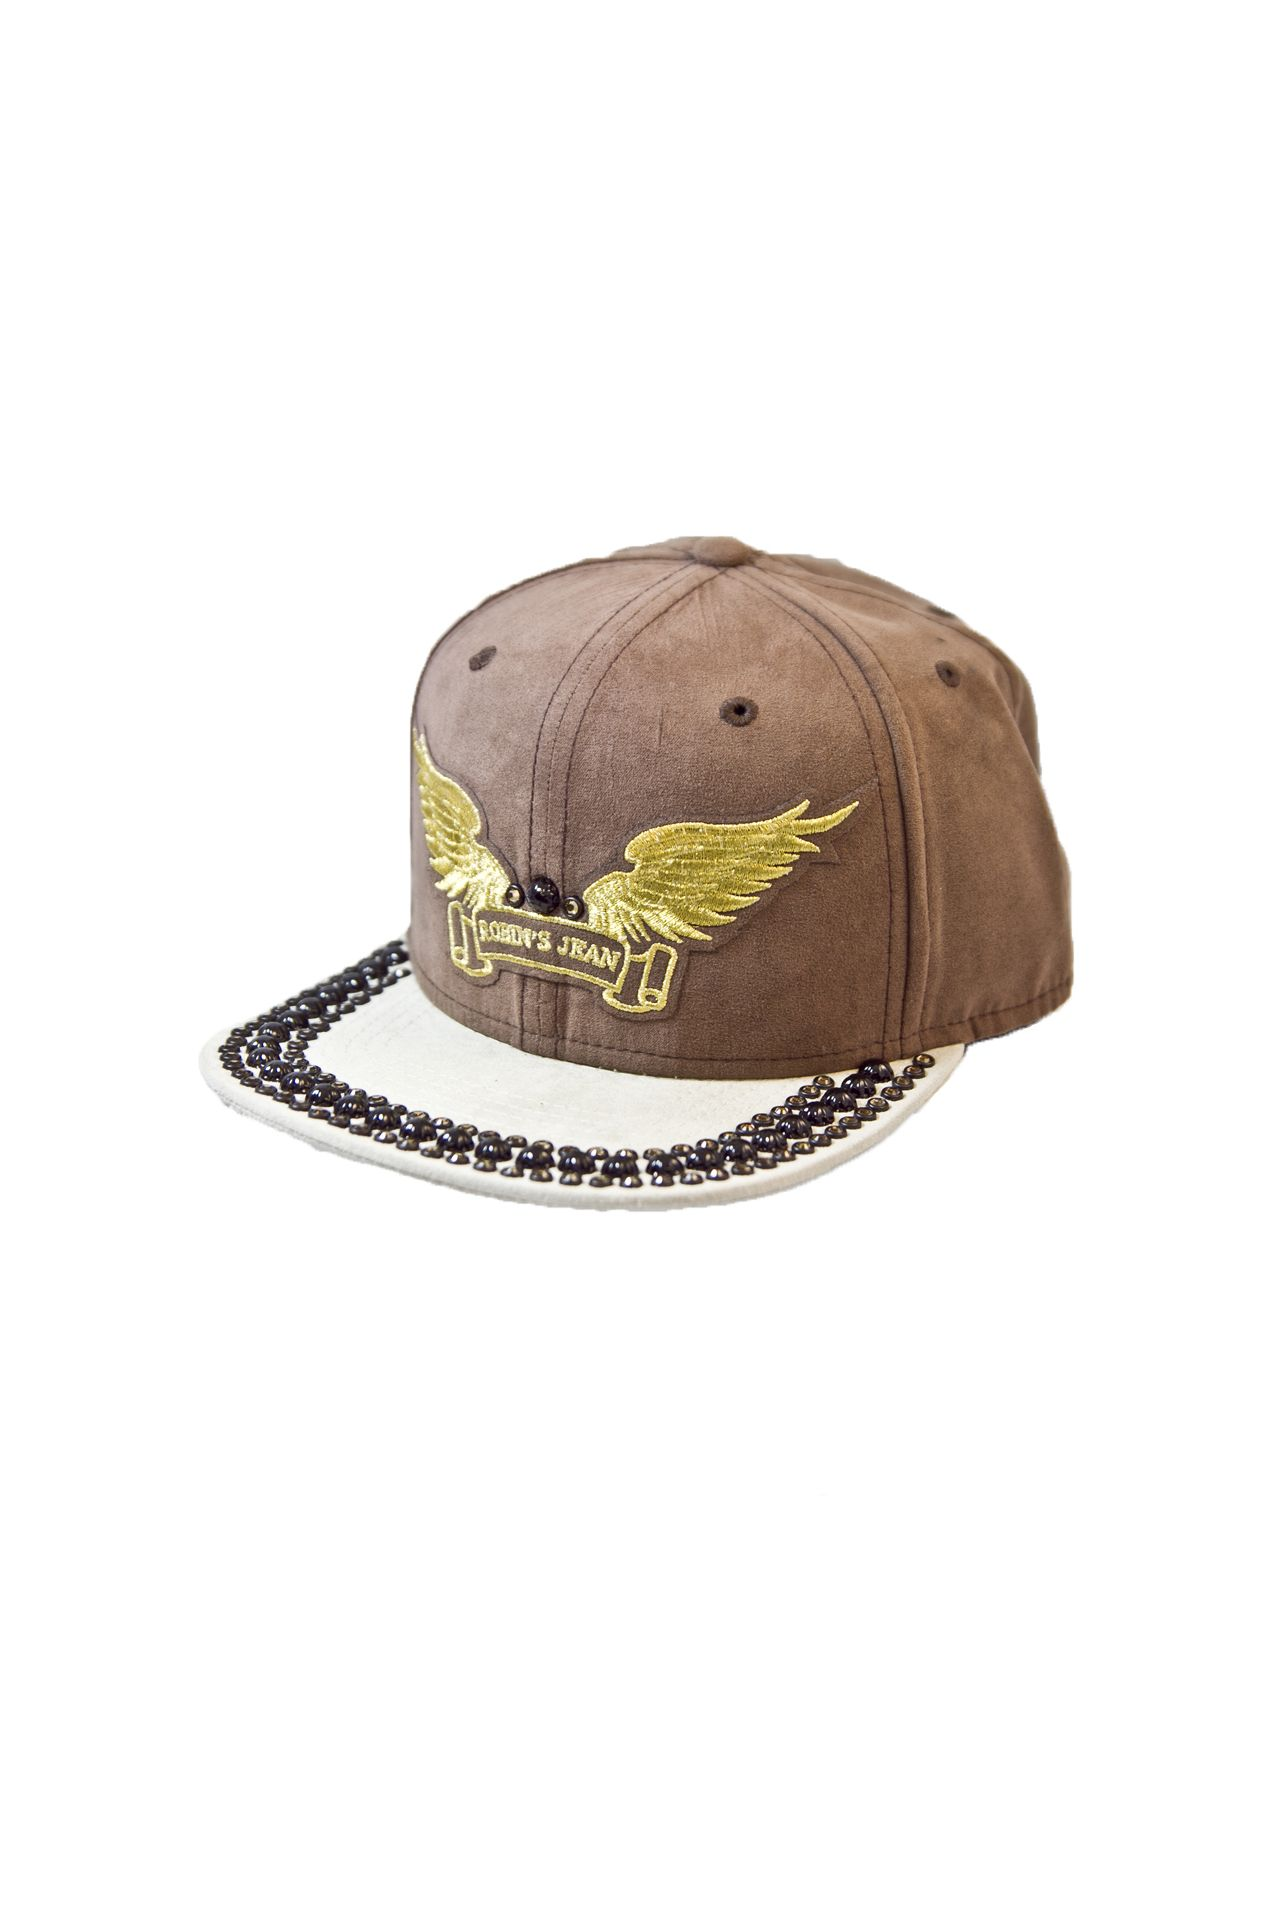 BROWN SUEDE CAP 2 TONES WITH CRYSTALS AND STUDS